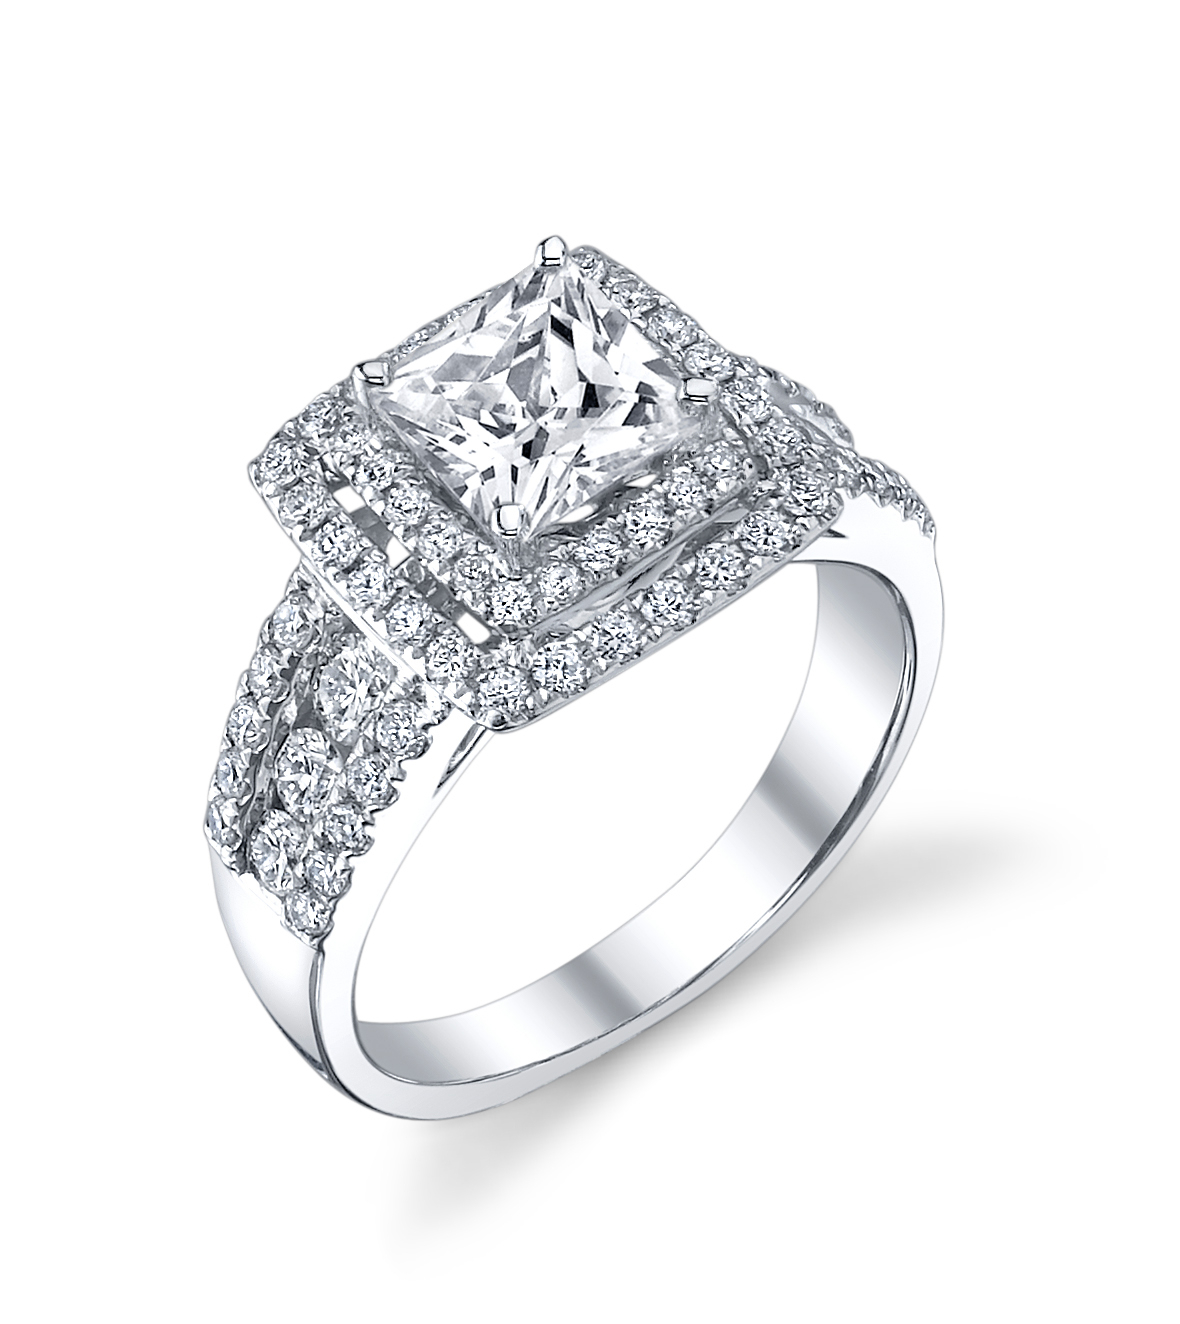 Double Halo Princess Cut Engagement Ring With Regard To Newest Princess Cut Diamond Criss Cross Anniversary Bands In White Gold (View 12 of 25)